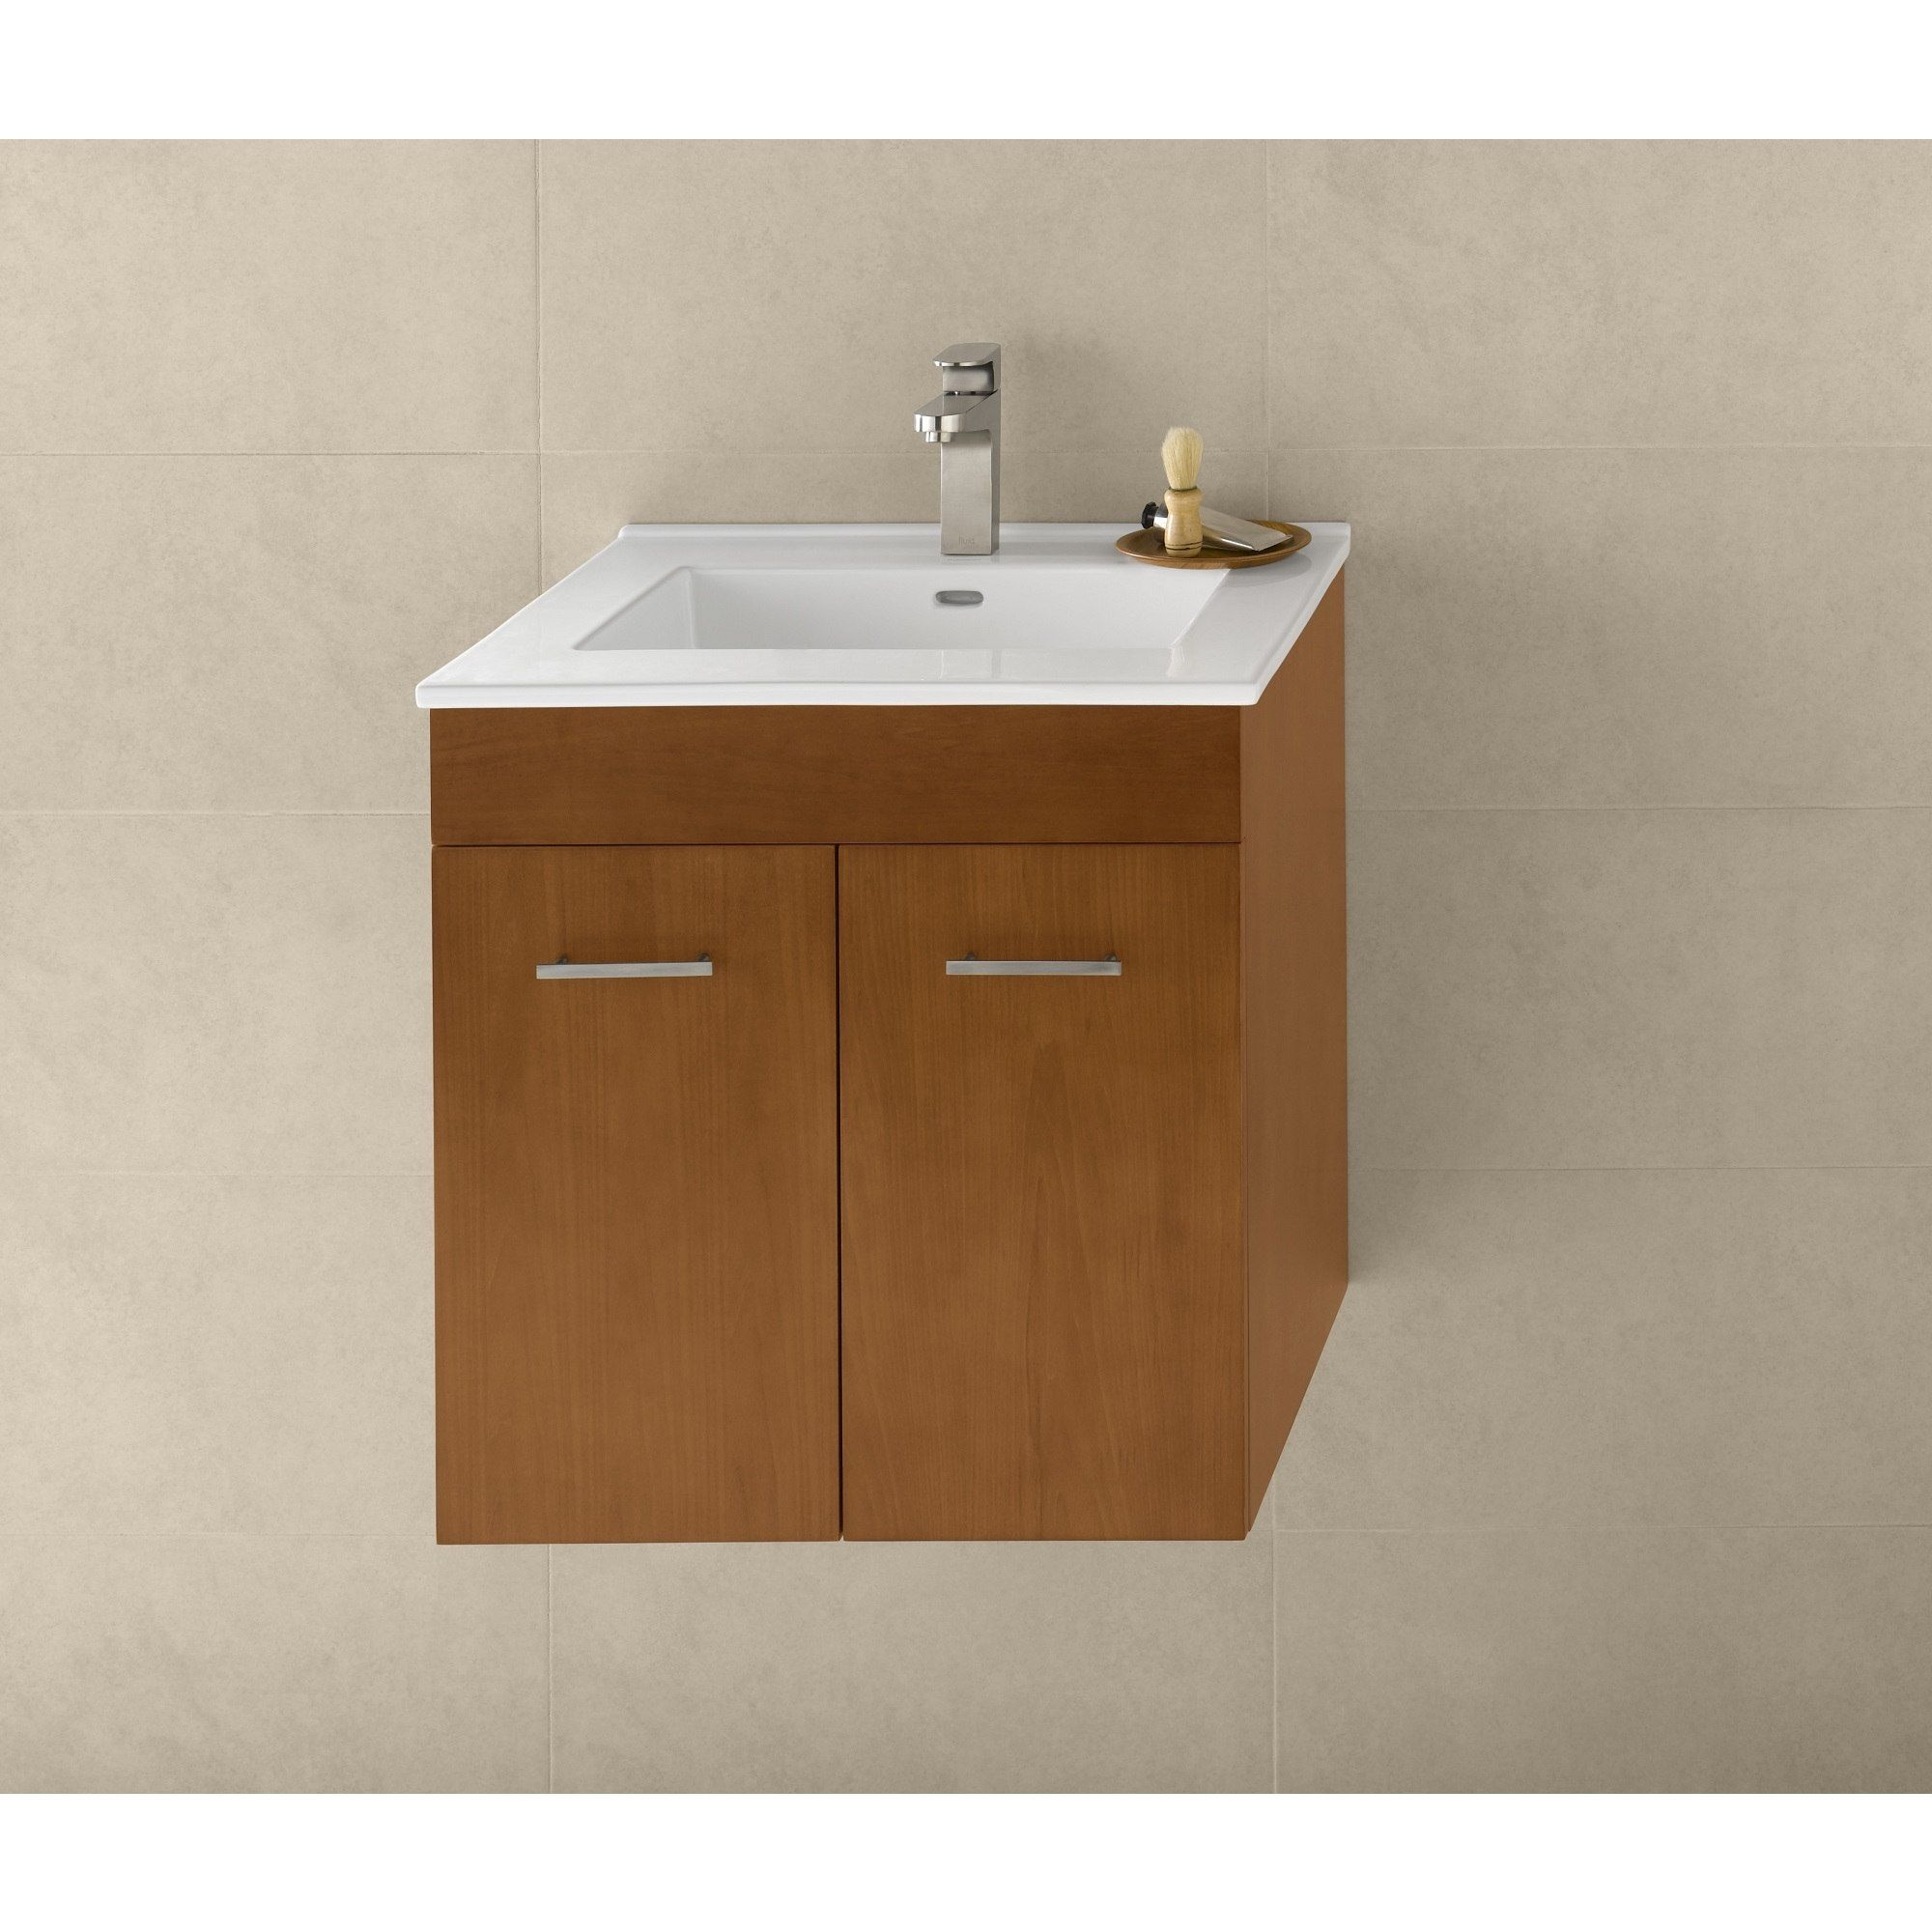 tenafly wade reviews modern bathroom logan pdx improvement vanity wall set wayfair double mount home